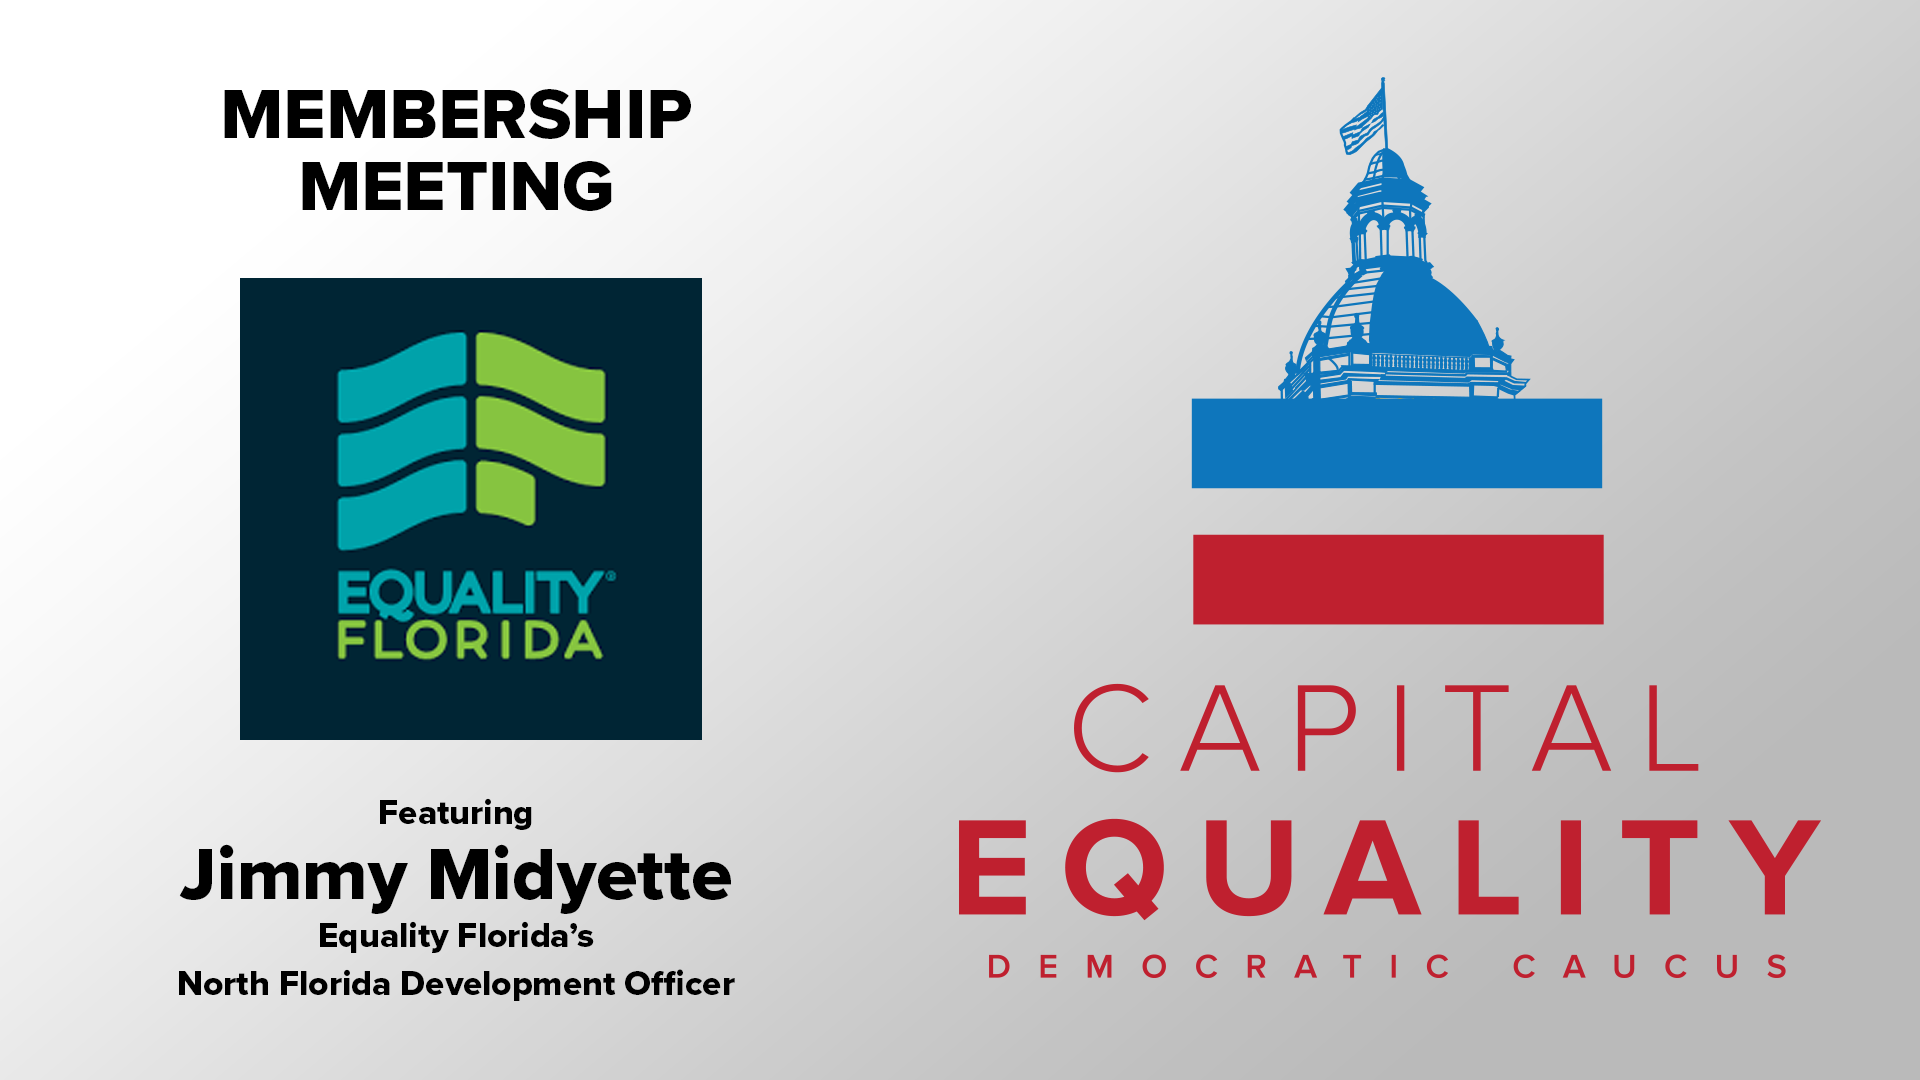 Virtual Meeting with Equality Florida's Jimmy Midyette